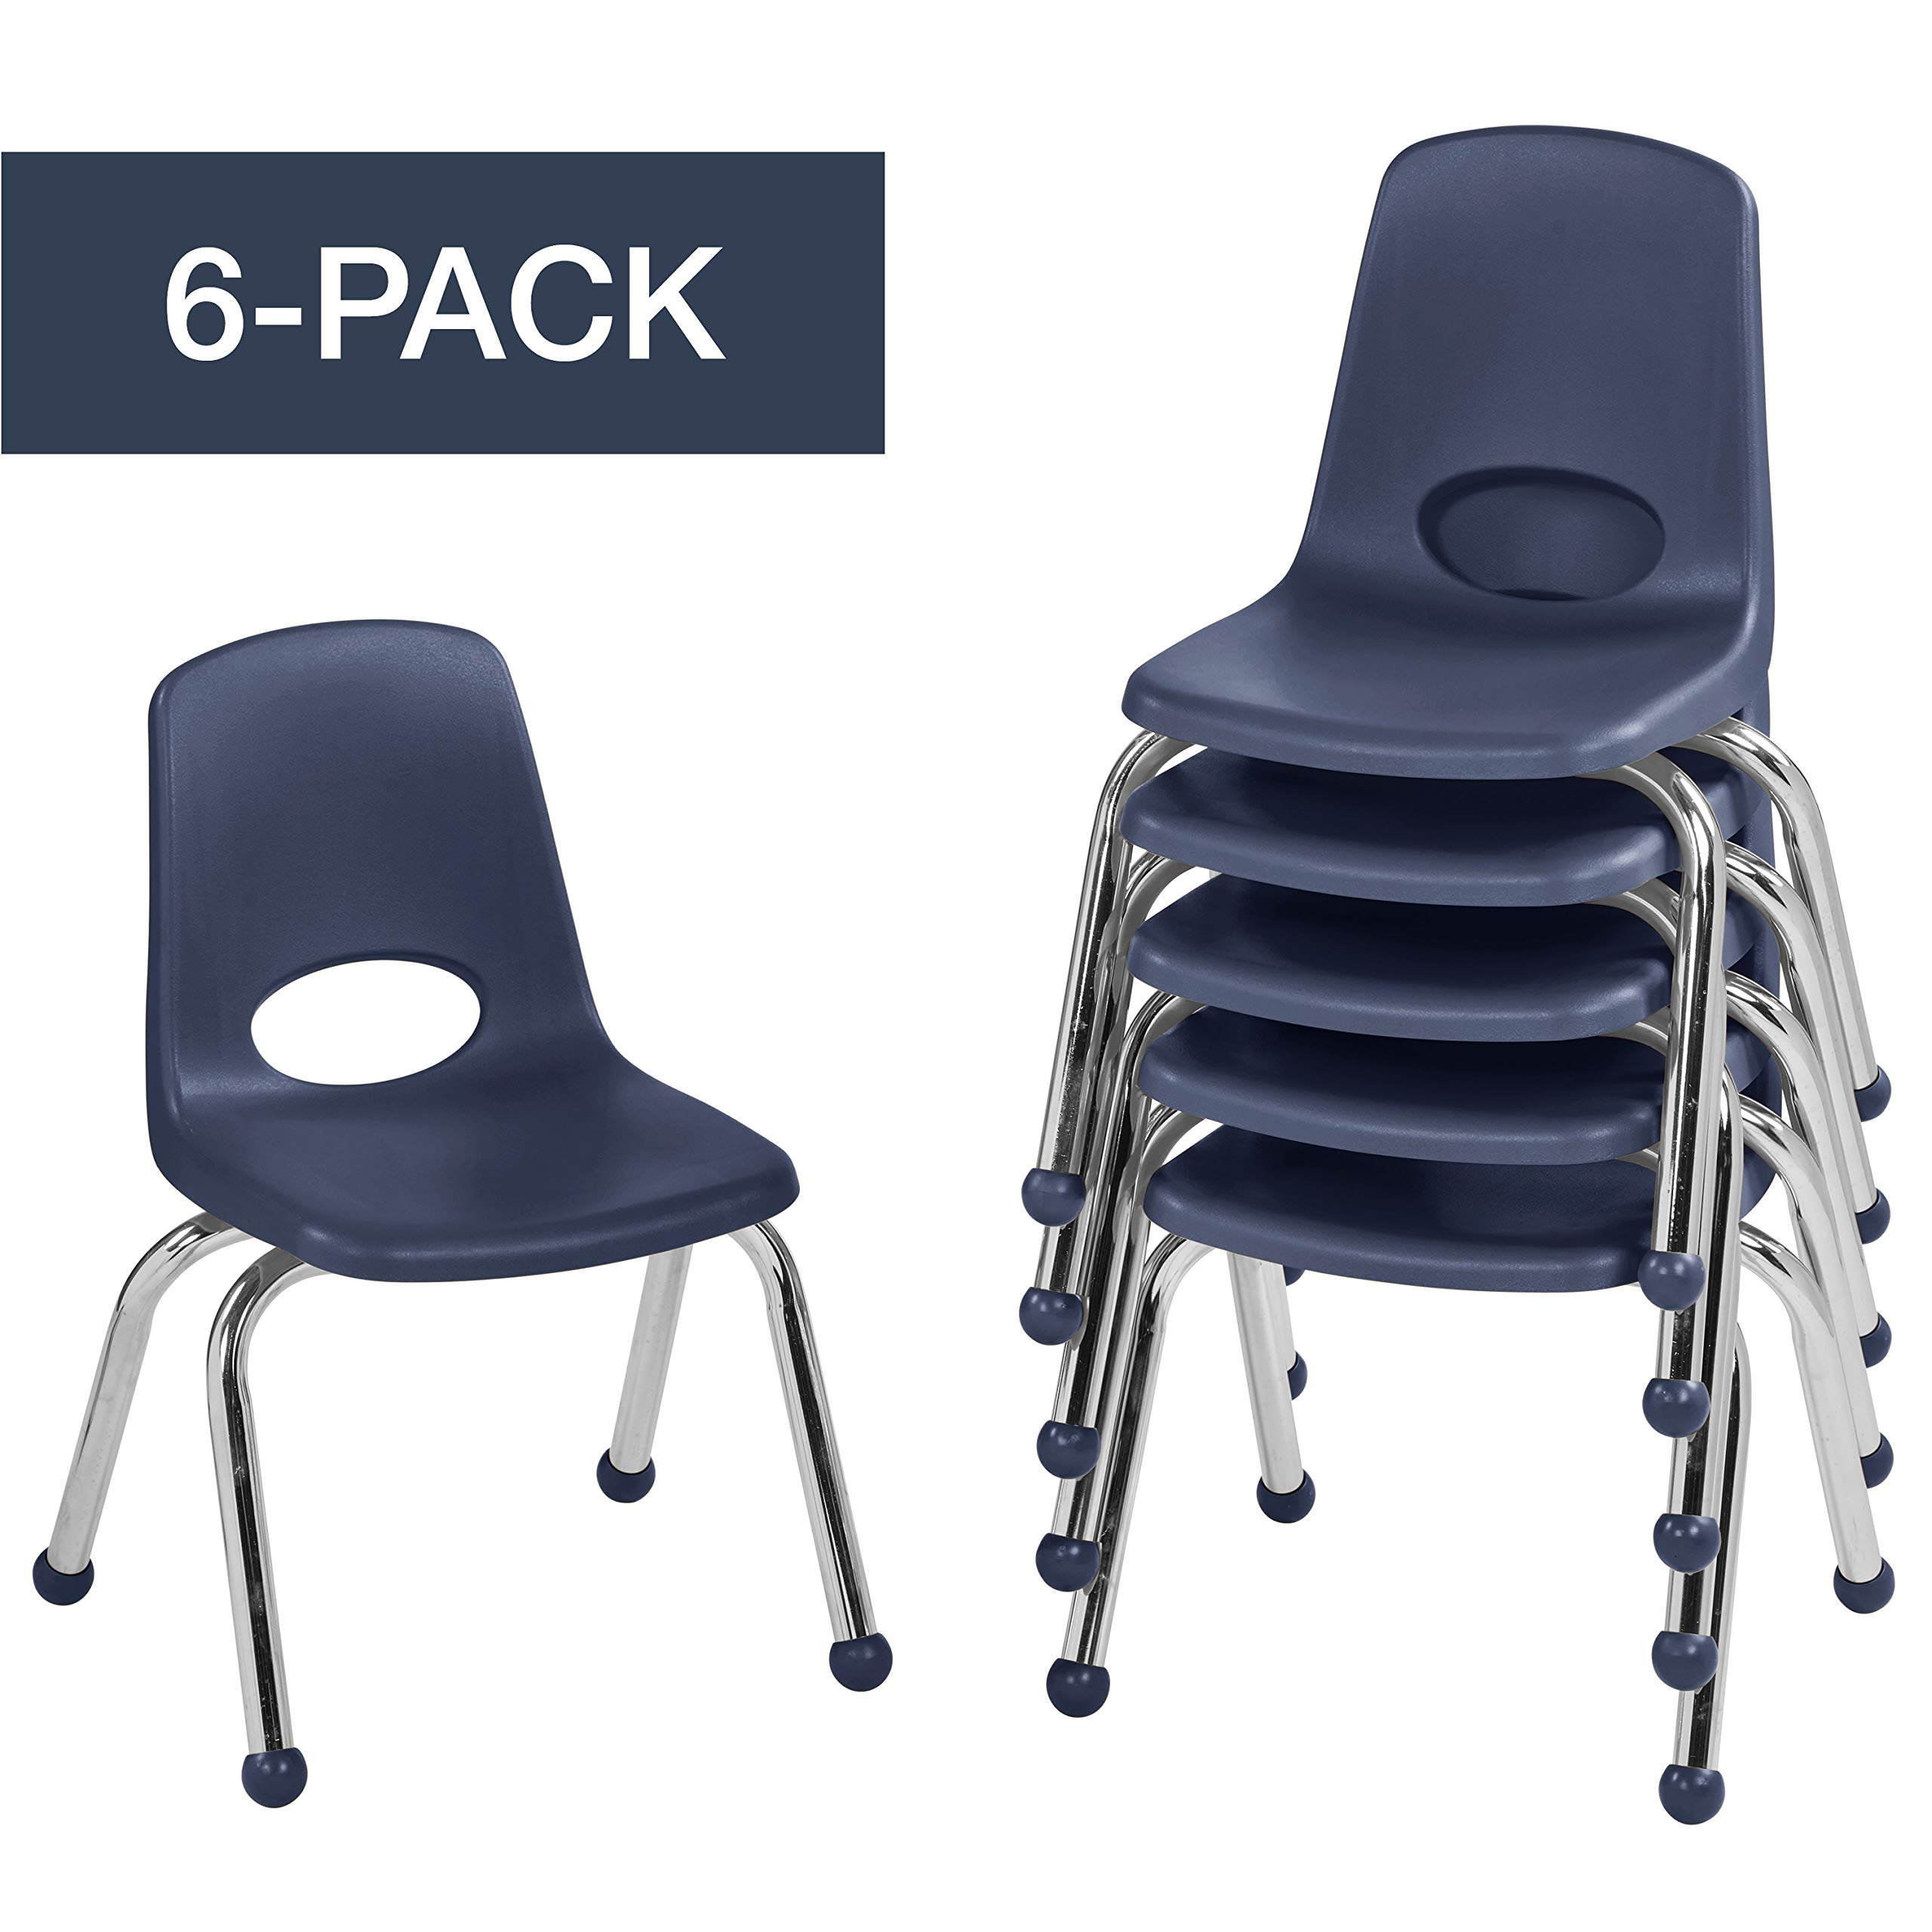 12'' School Stack Chair,Stacking Student Chairs with Chromed Steel Legs and Ball Glides - Navy (6-Pack)